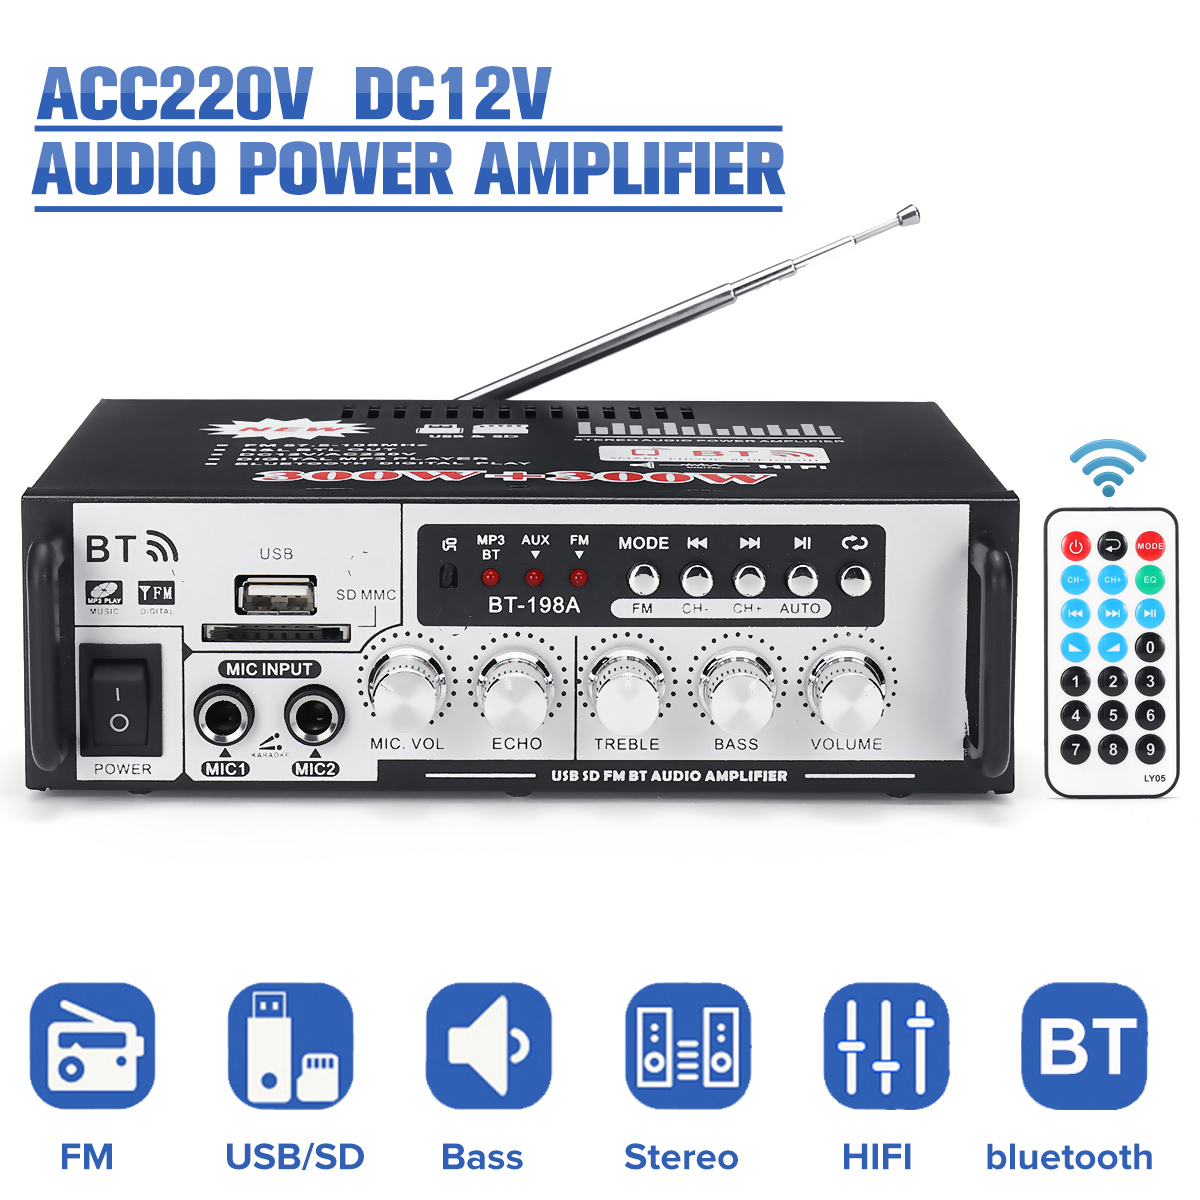 AC220V DC12V HIFI Power Amplifier Wireless Bluetooth Bass Audio FM Radio U Dish TF Card Power Amplifier Home Amplifier